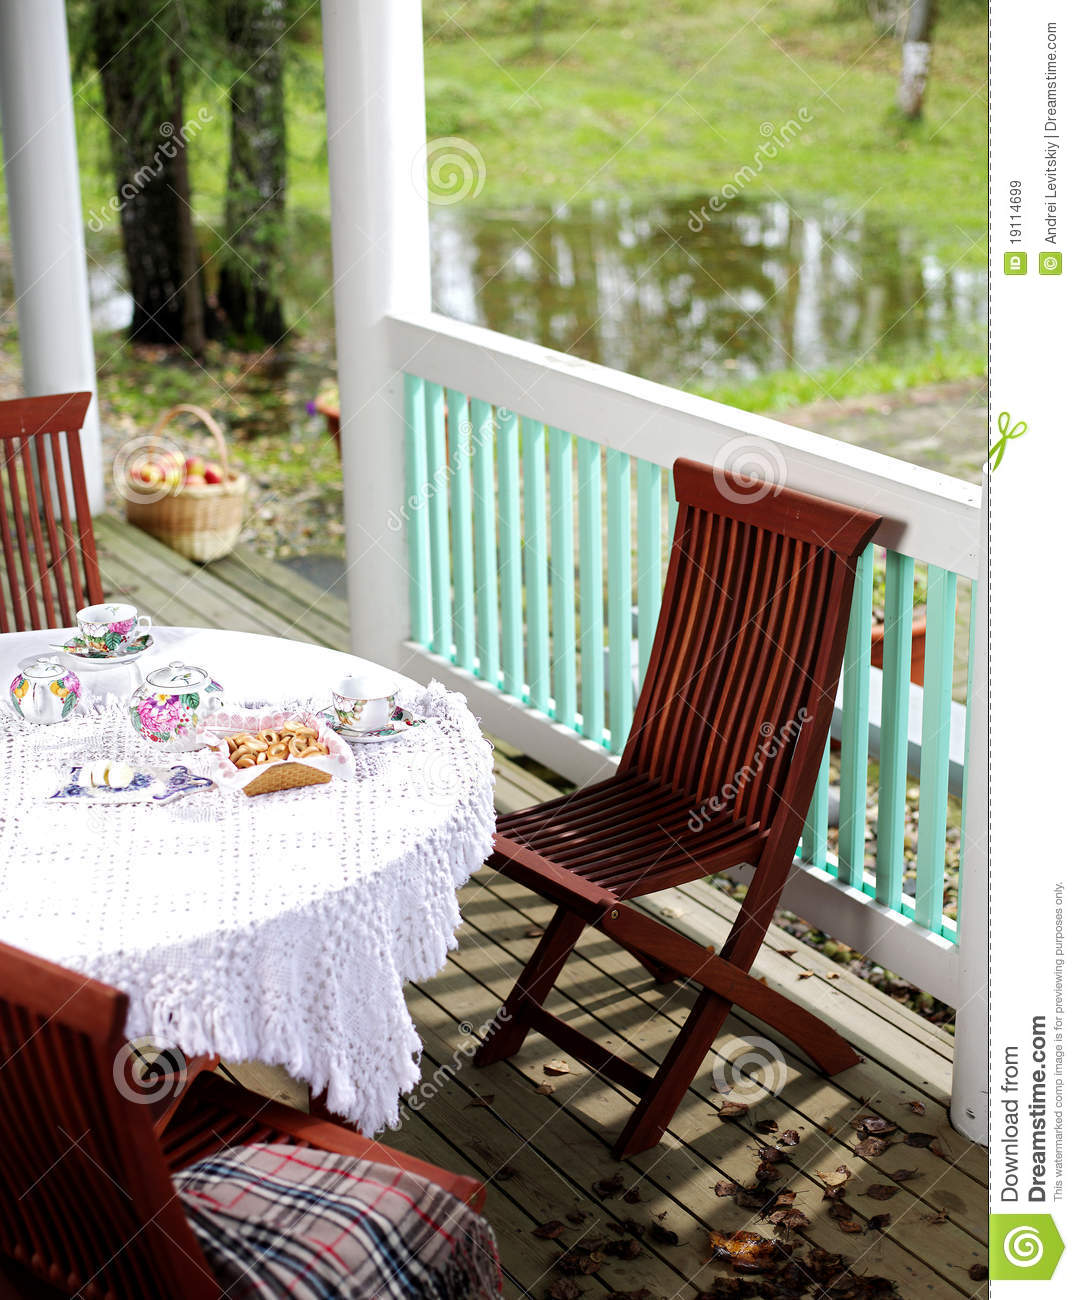 Breakfast on the terrace royalty free stock images image for The terrace brunch